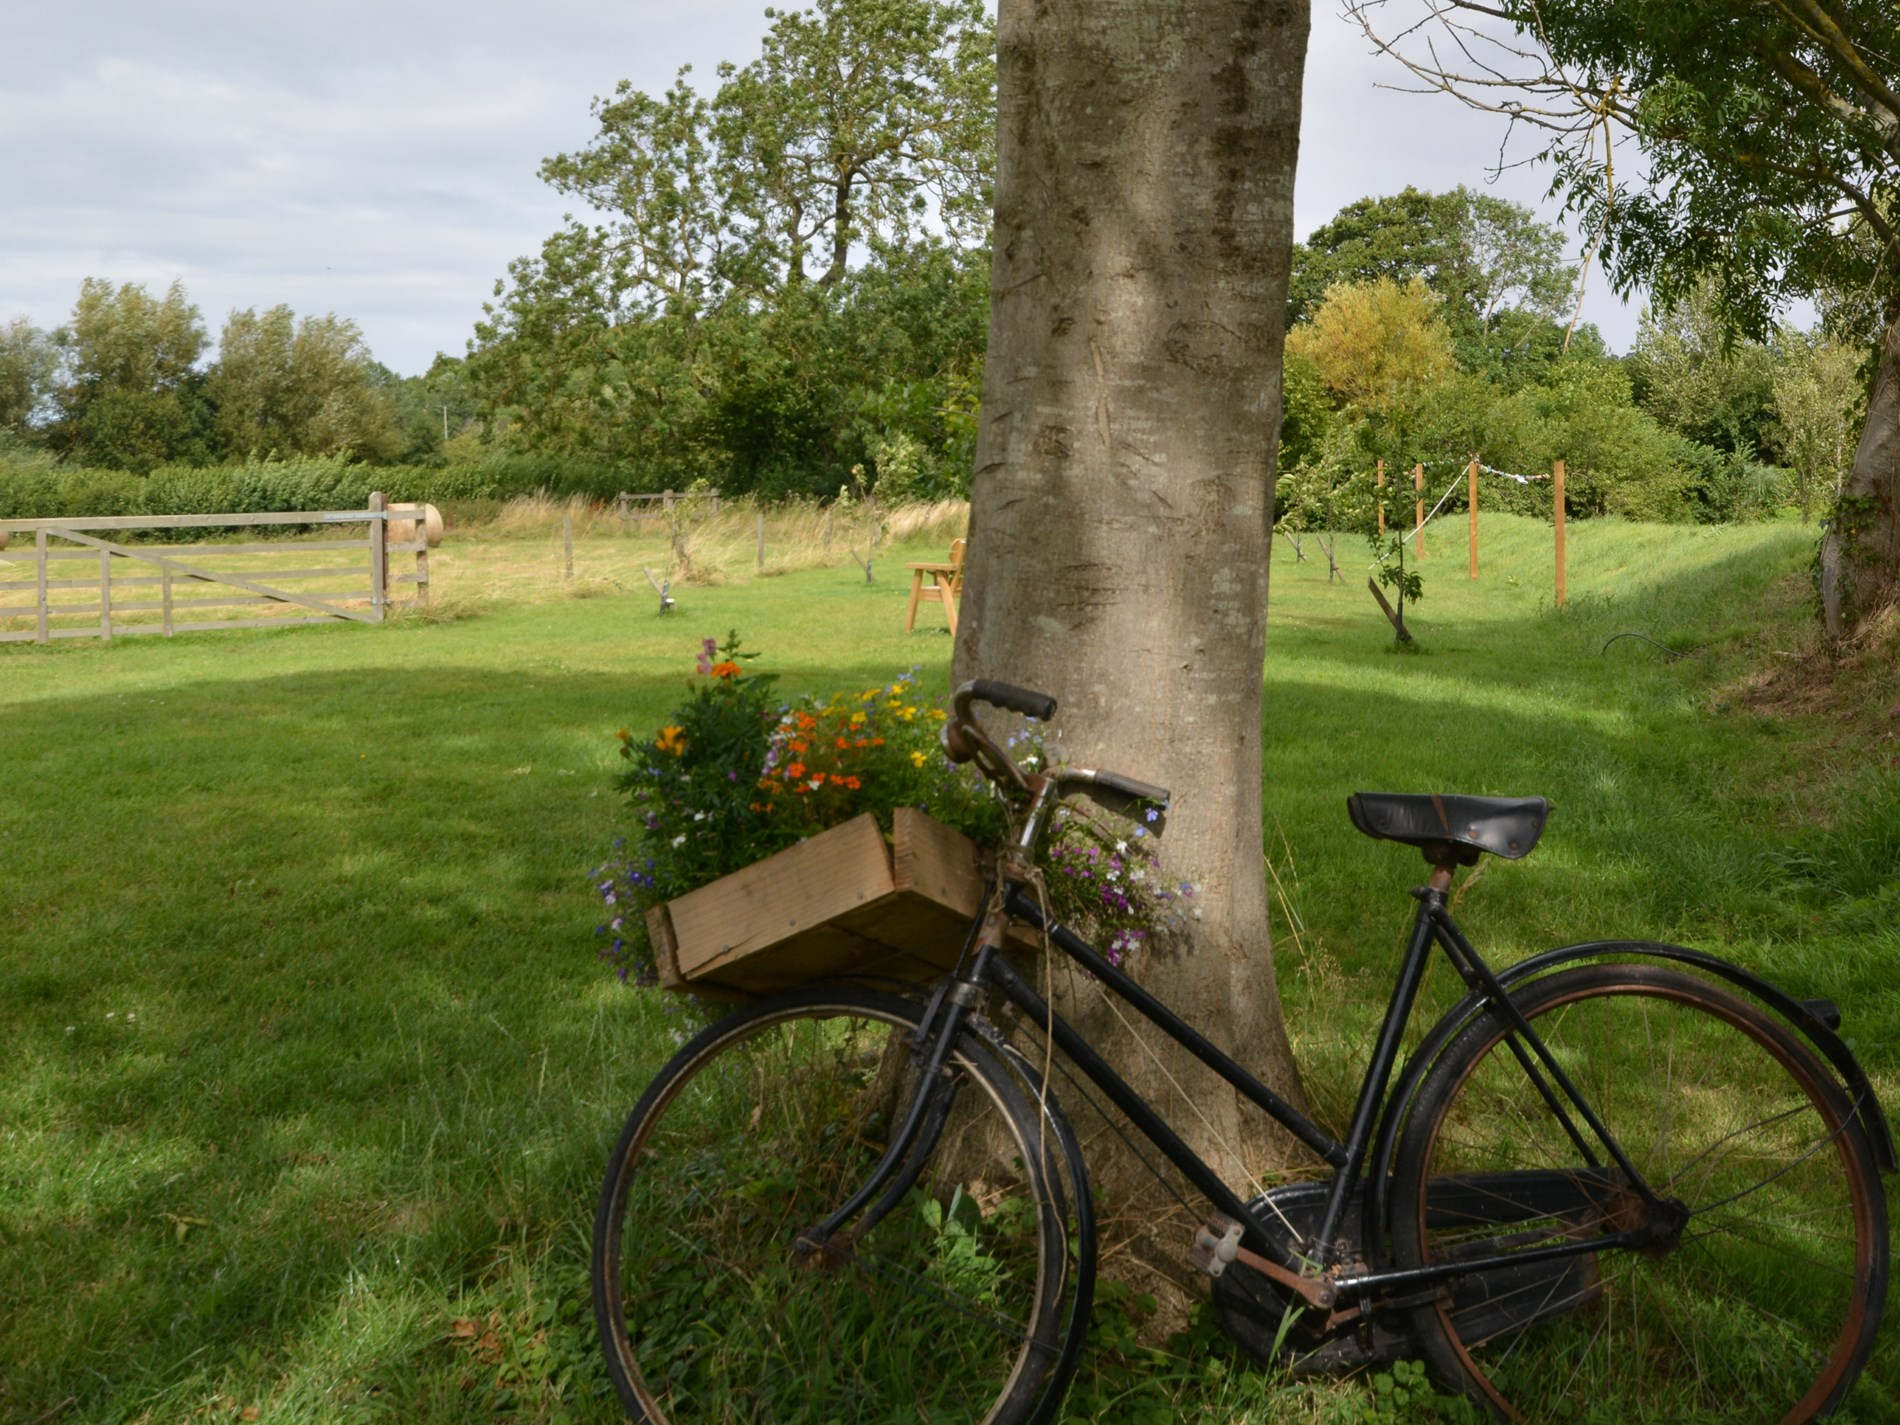 Explore the owners orchard and sit and enjoy